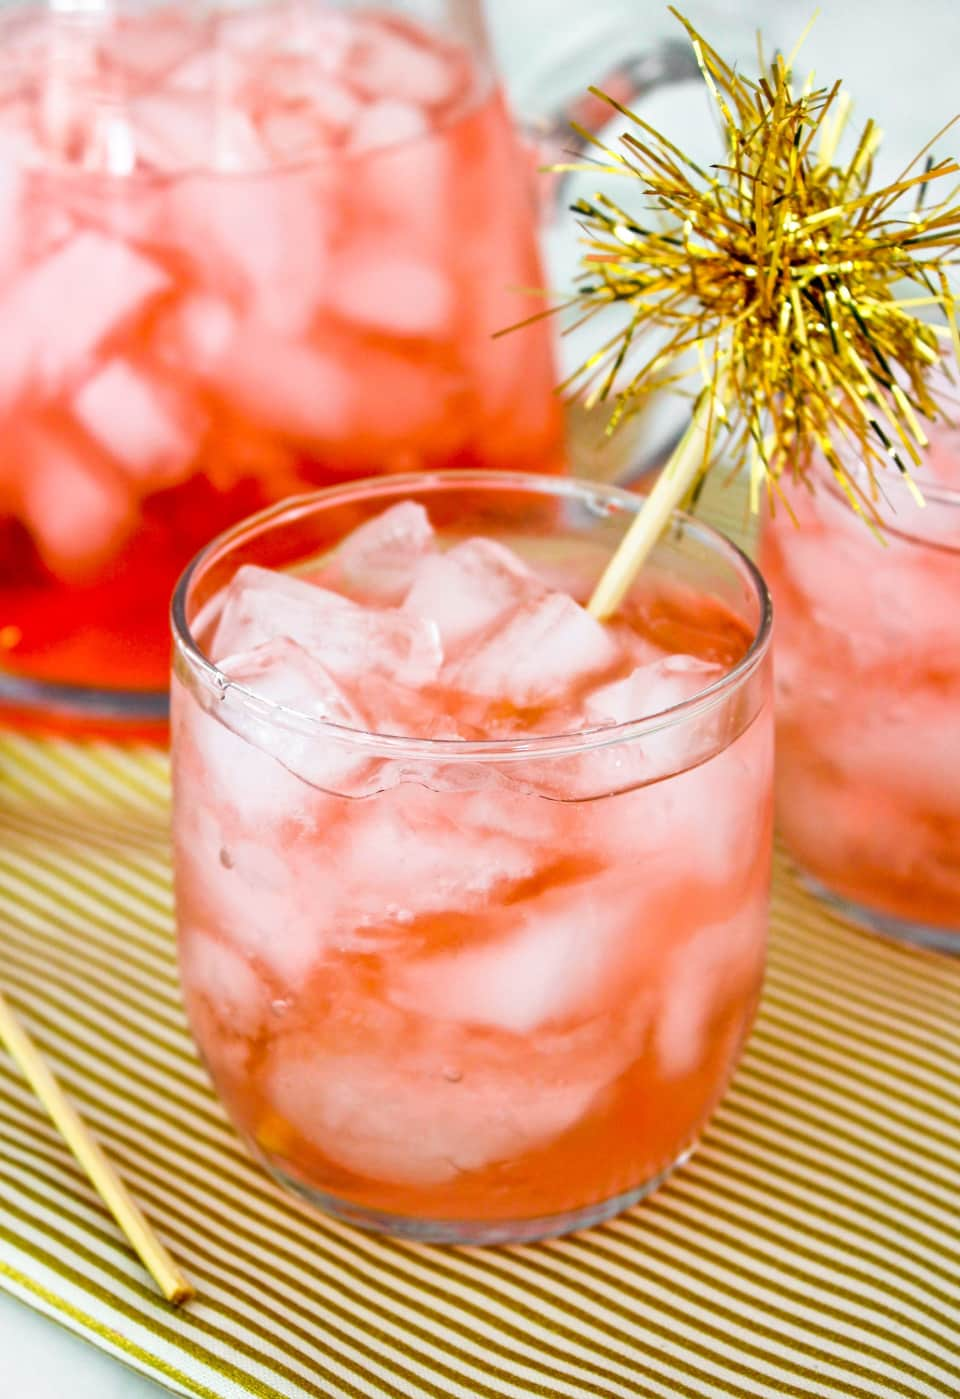 Cranberry And St. Germain Pitcher Sparkler | Elderflower Liqueur Recipes And Cocktails For Spring And Summer